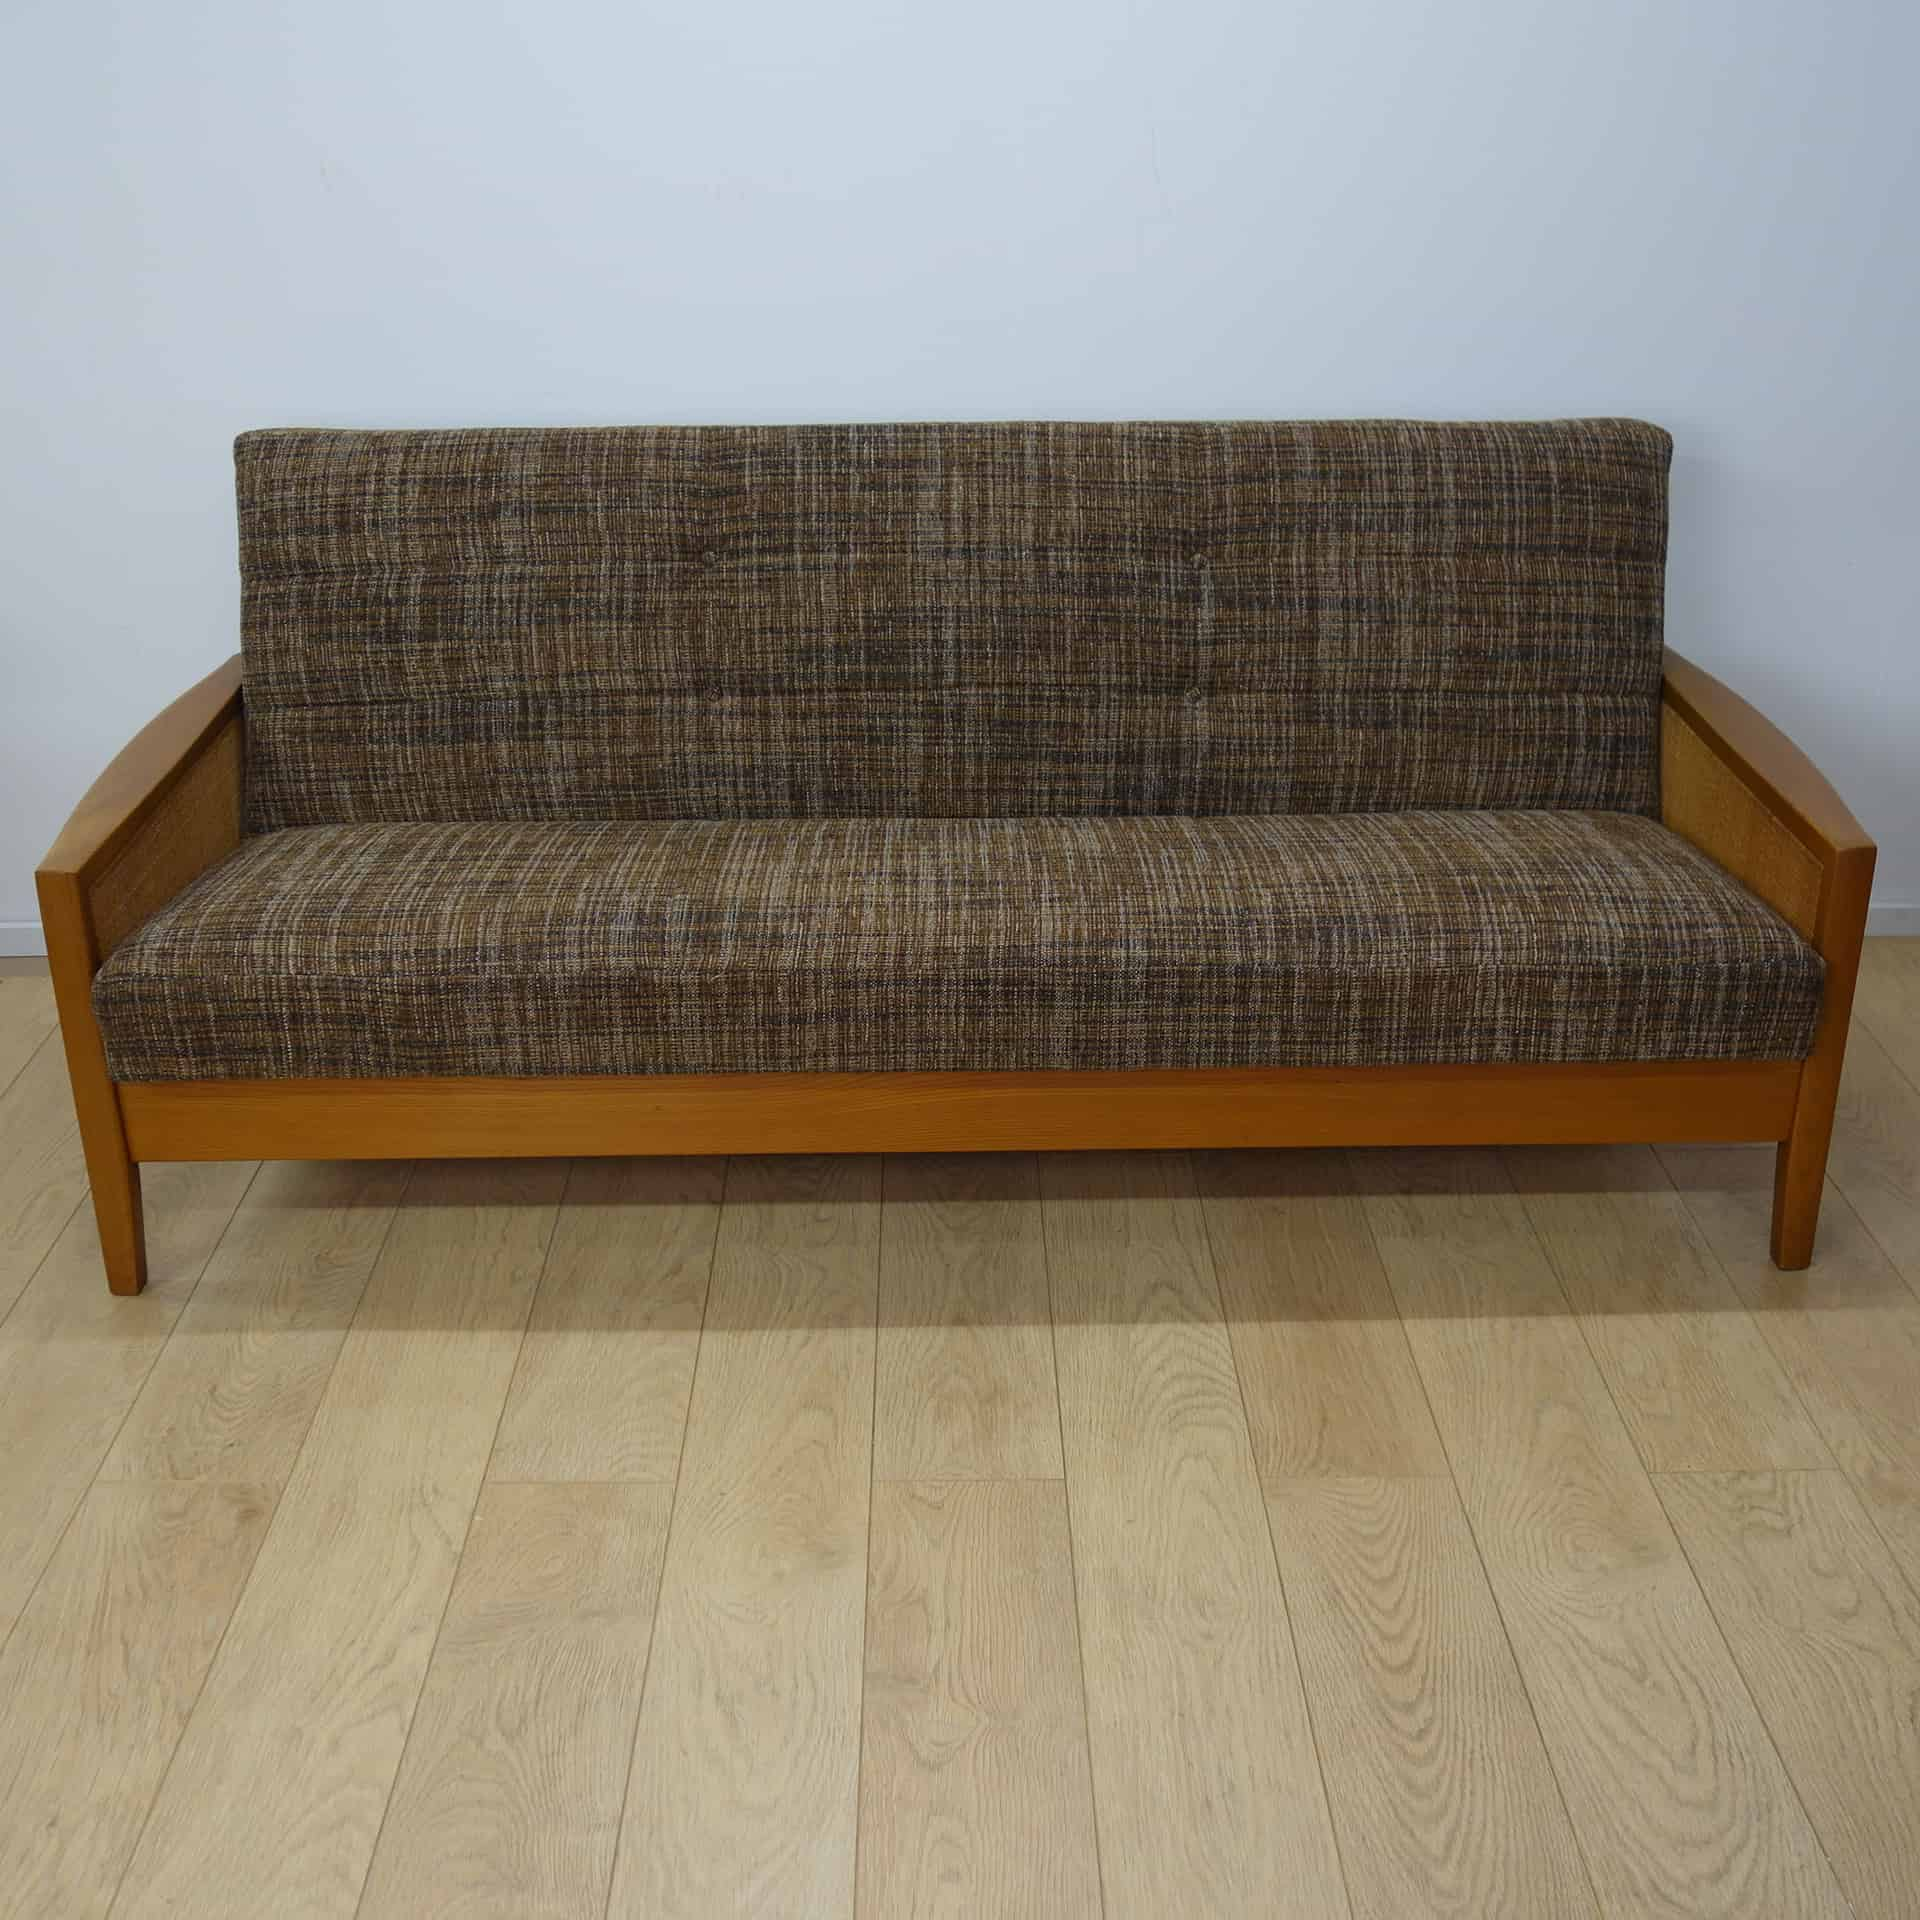 wicker sofa uk 2 seater beds argos 1960s bed with rattan sides mark parrish mid